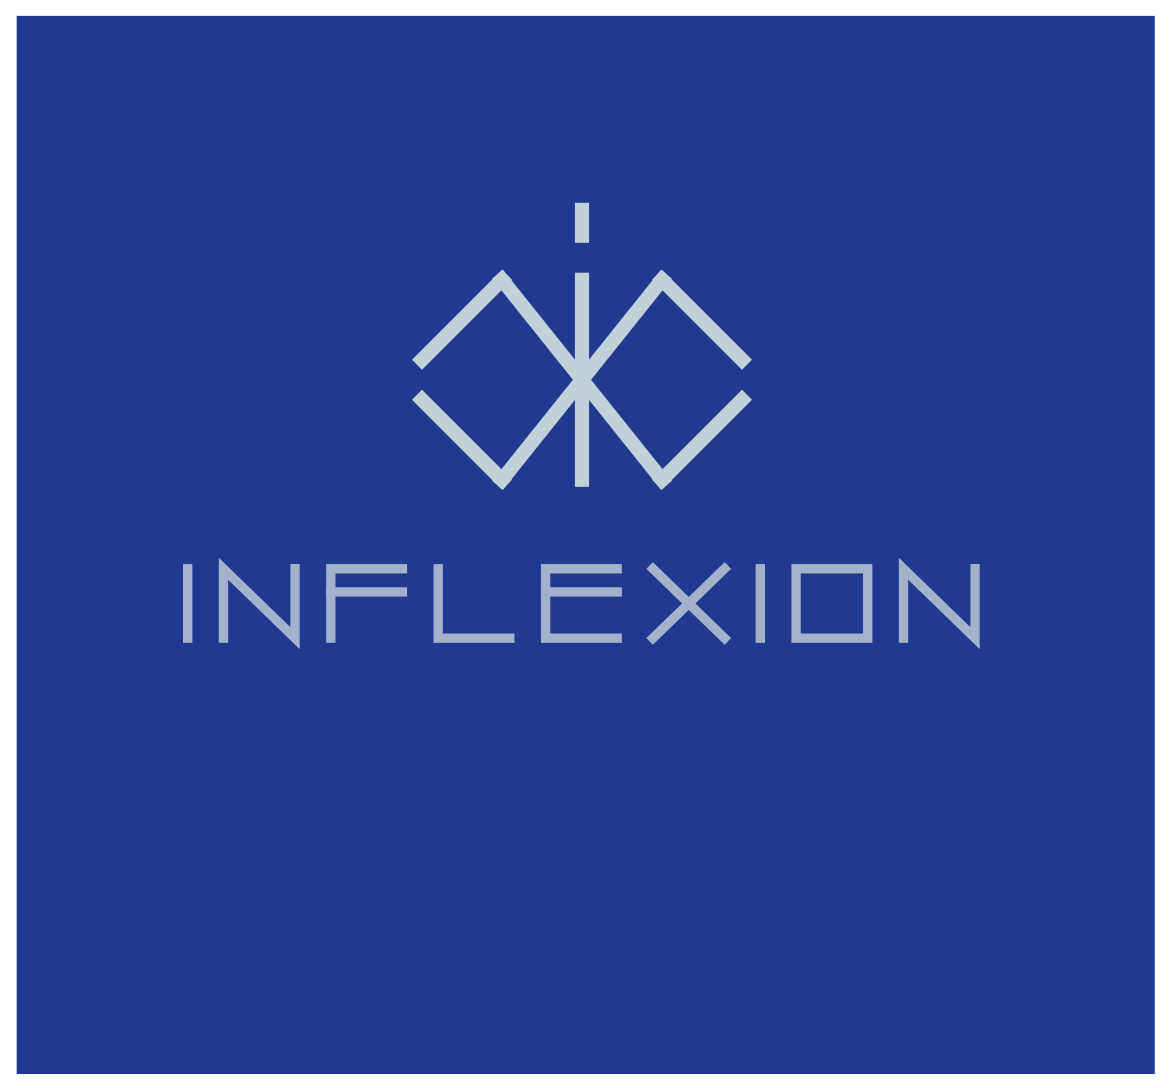 Logo Design by JaroslavProcka - Entry No. 117 in the Logo Design Contest Professional Logo Design for Inflekxion.